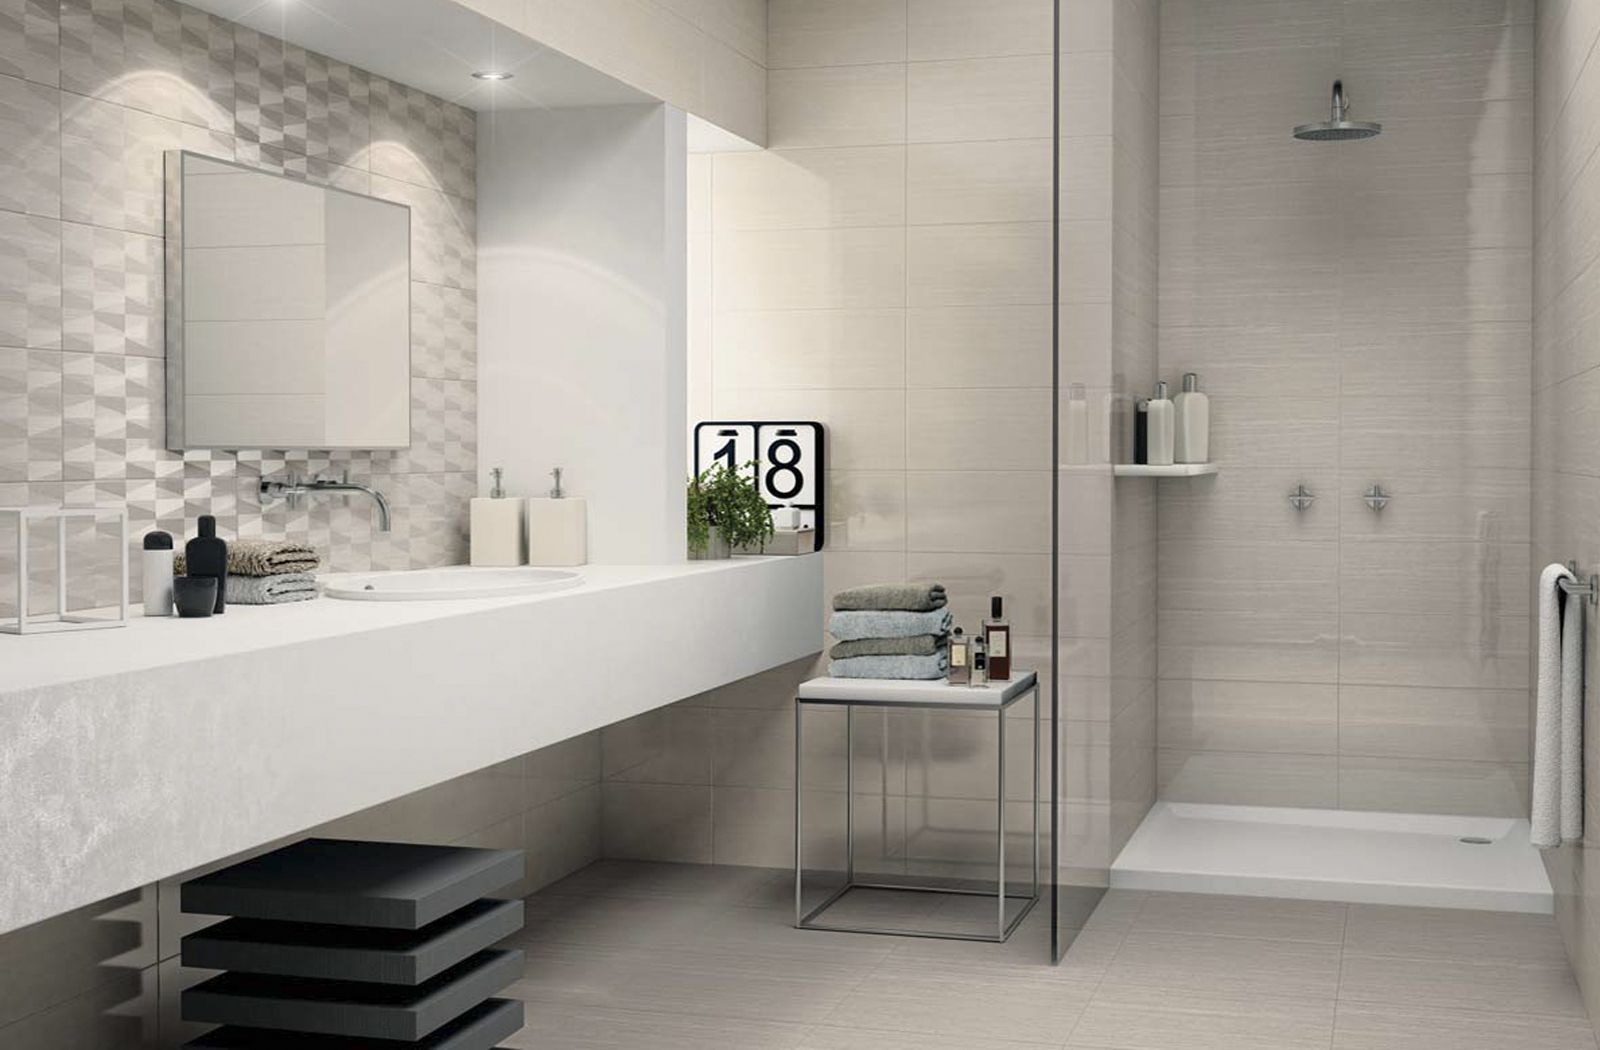 Elegant Bathrooms Designs Classic Elegant Bathroom Design Decor With Sign Tile Collection